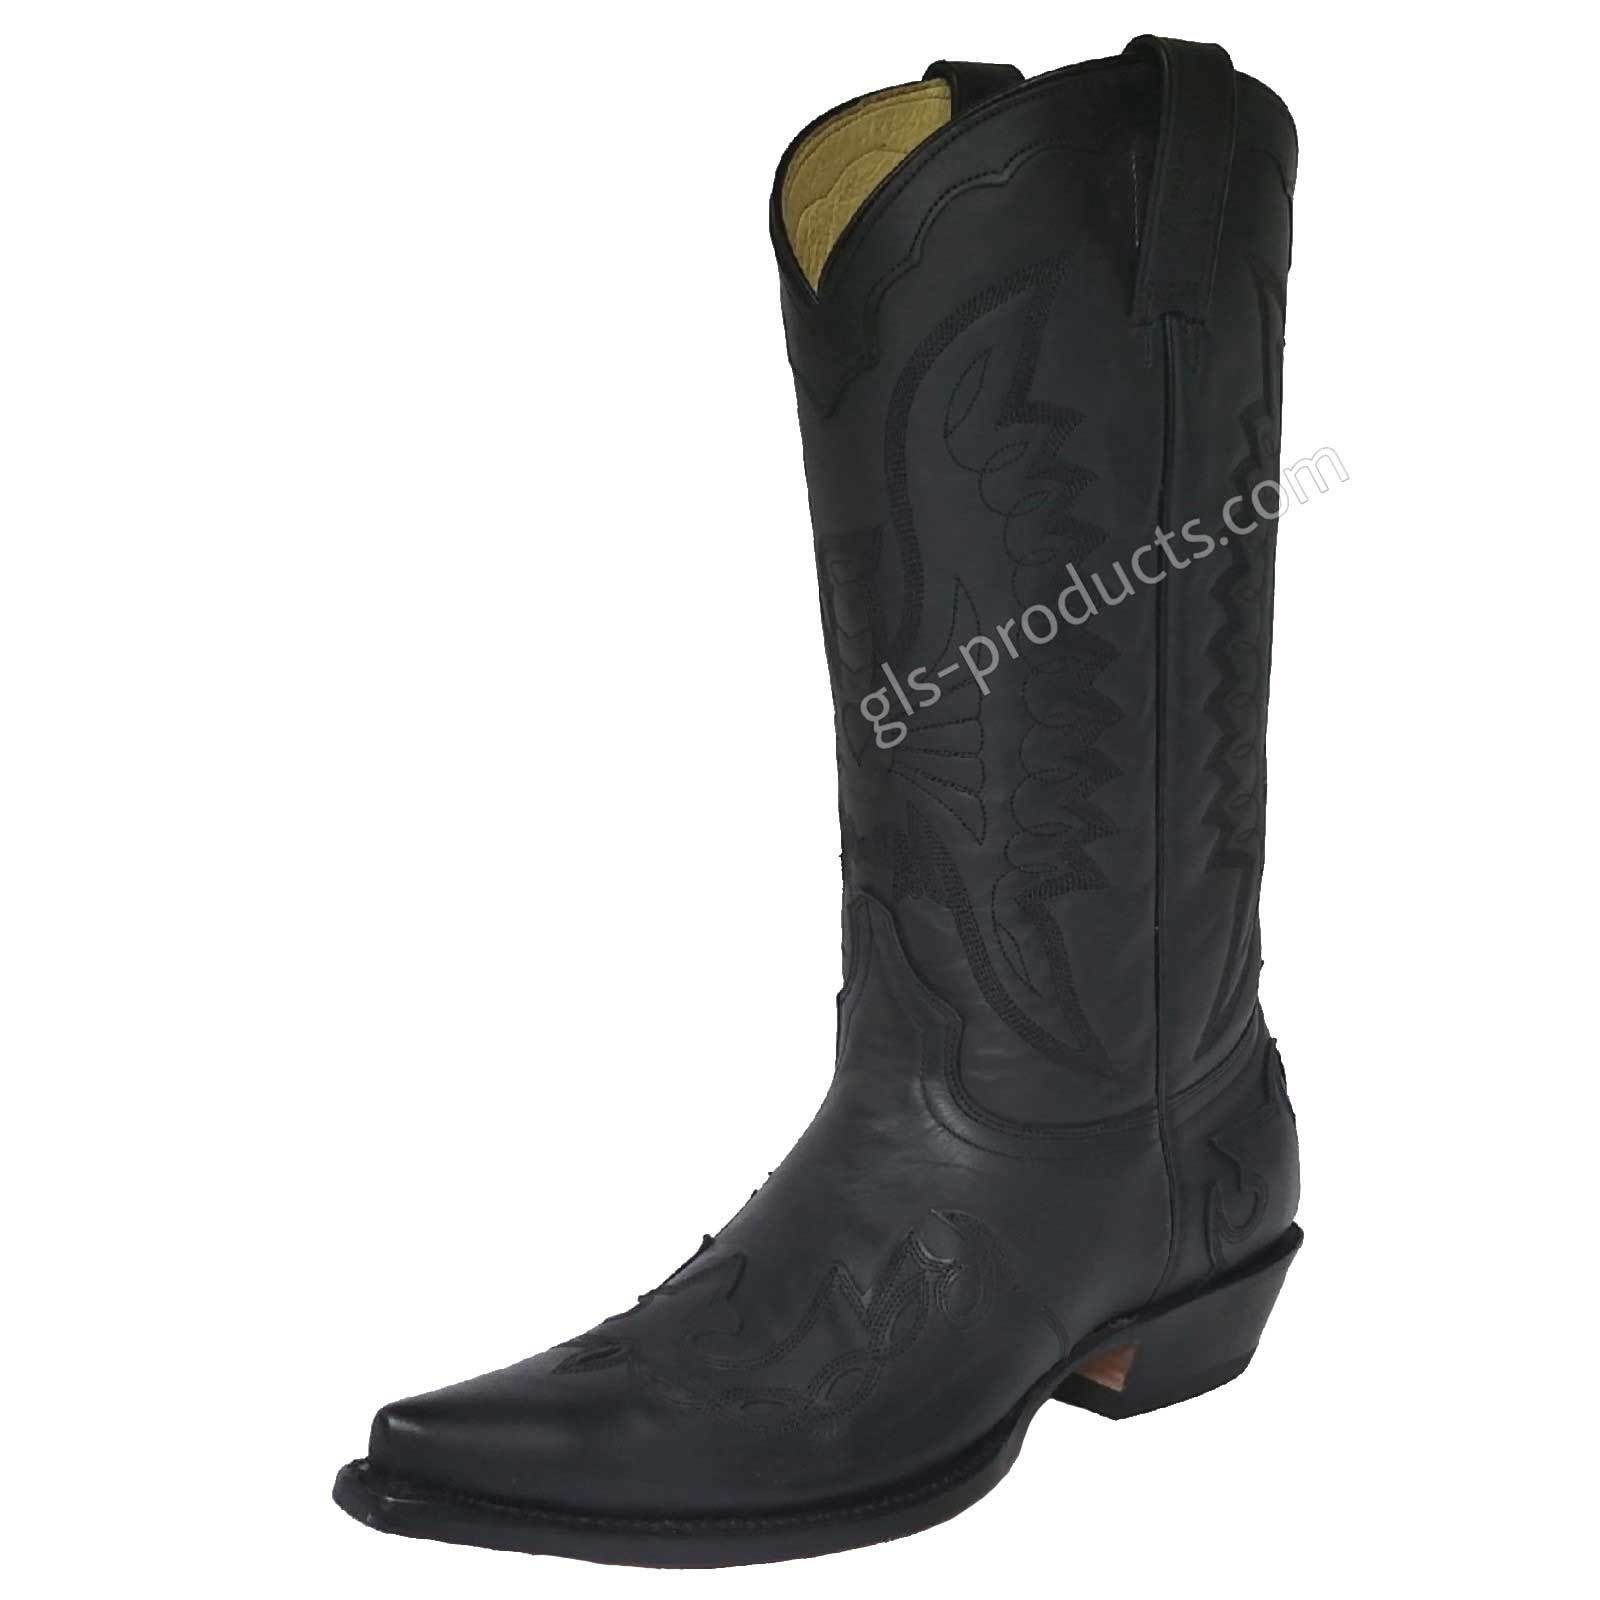 Rancho 5024 Cowboy Western Boot Flames Black handmade genuine leather lining new